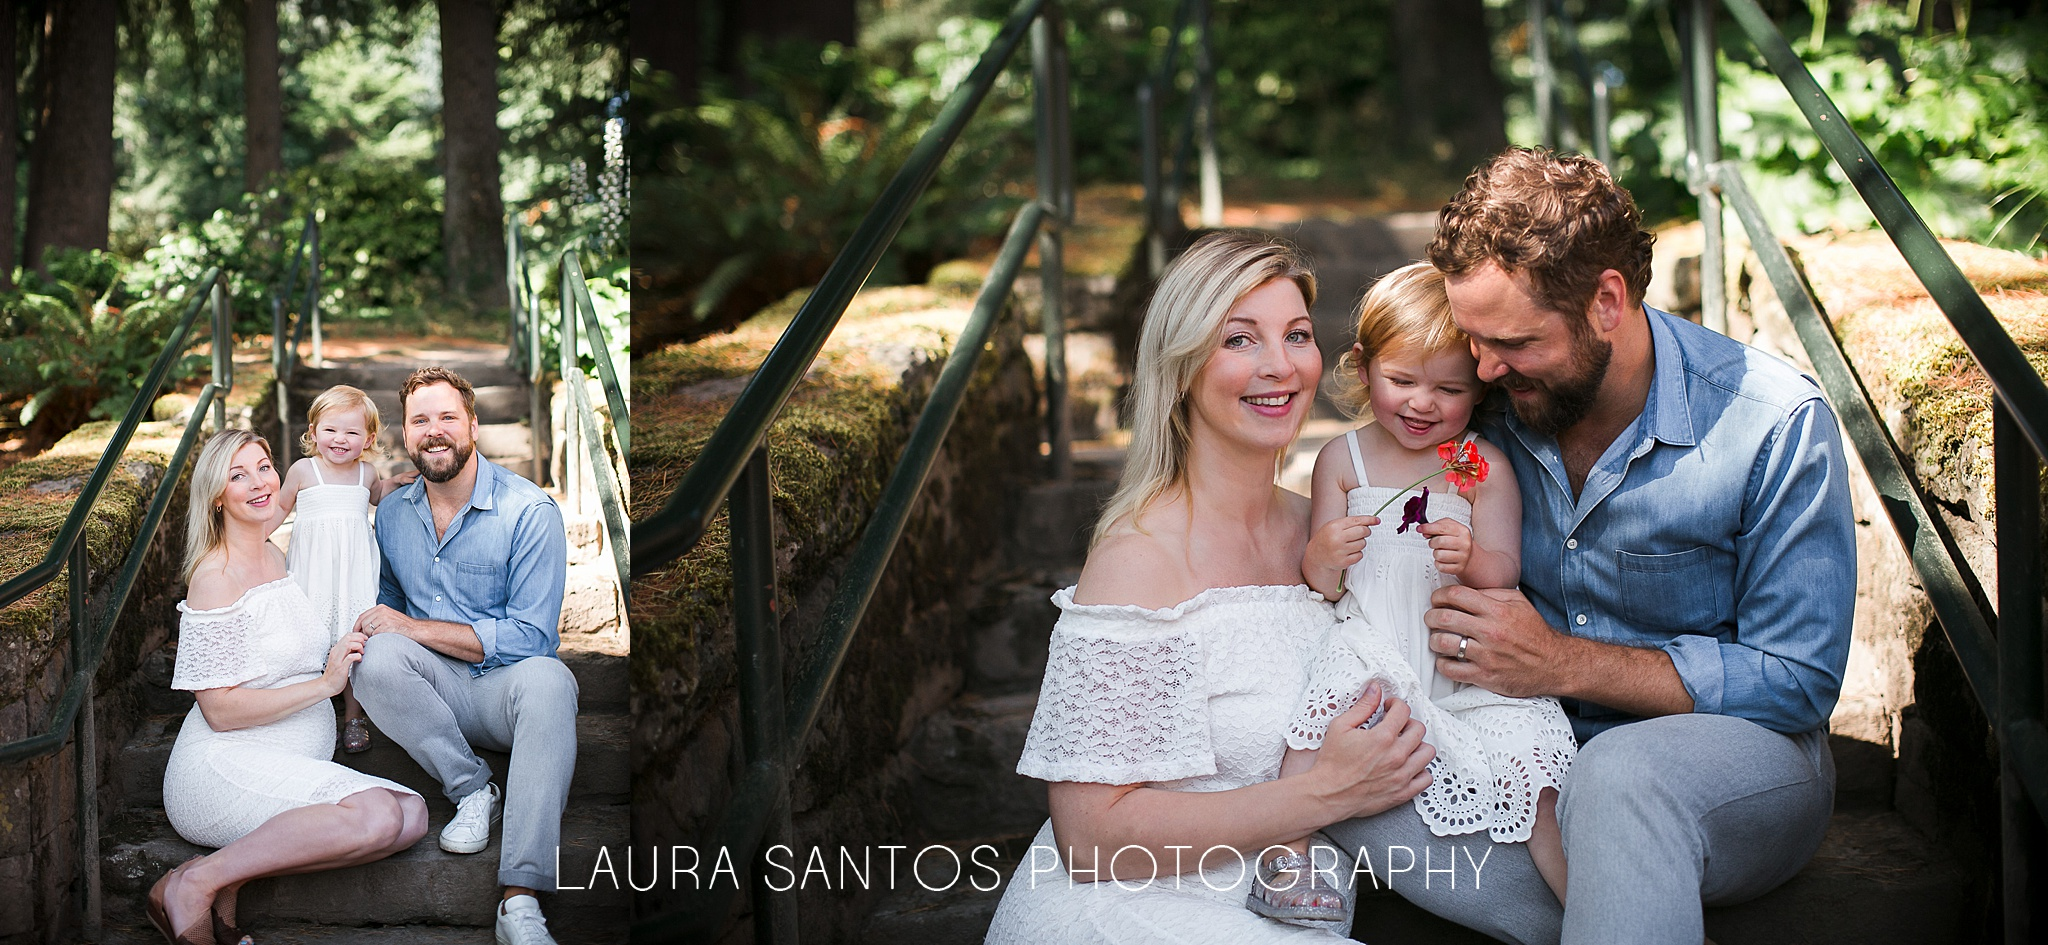 Laura Santos Photography Portland Oregon Family Photographer_1064.jpg